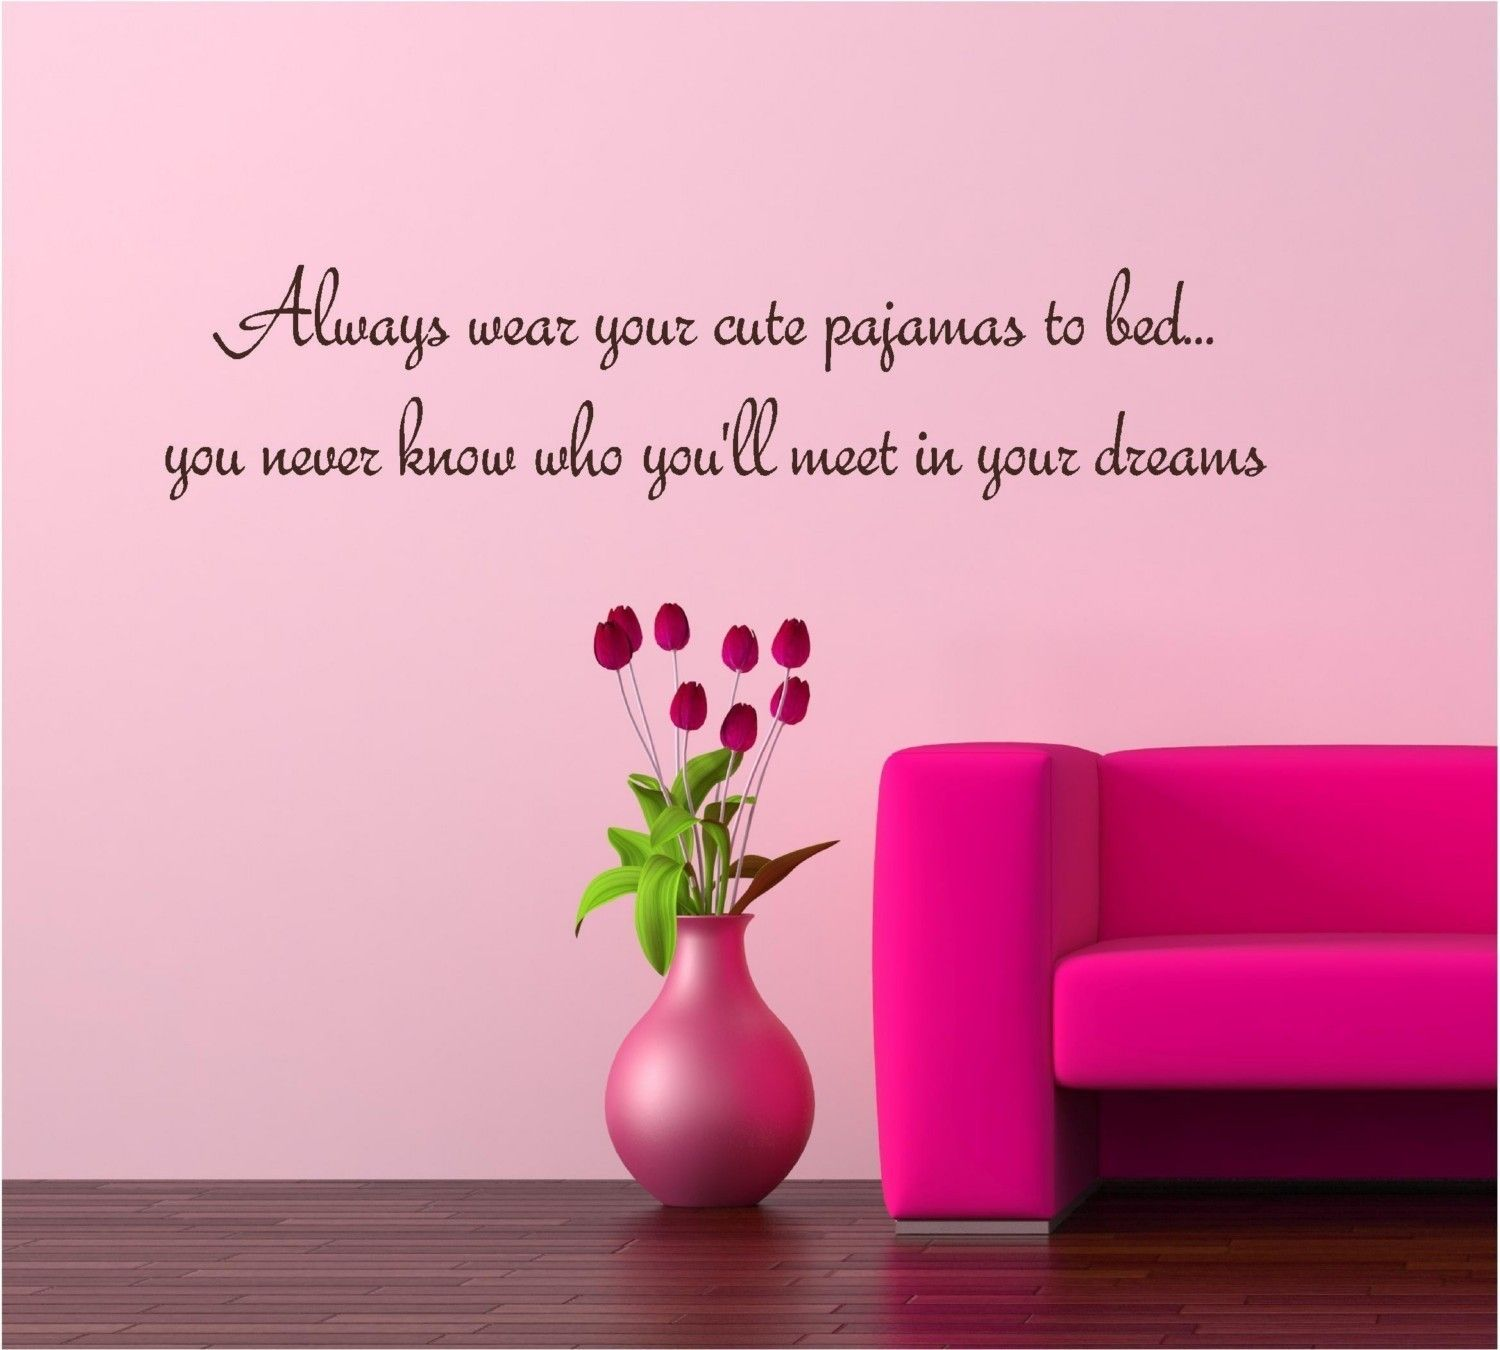 Inspirational Dream Life Quotes Hd Dp For Whatsapp Inspirational